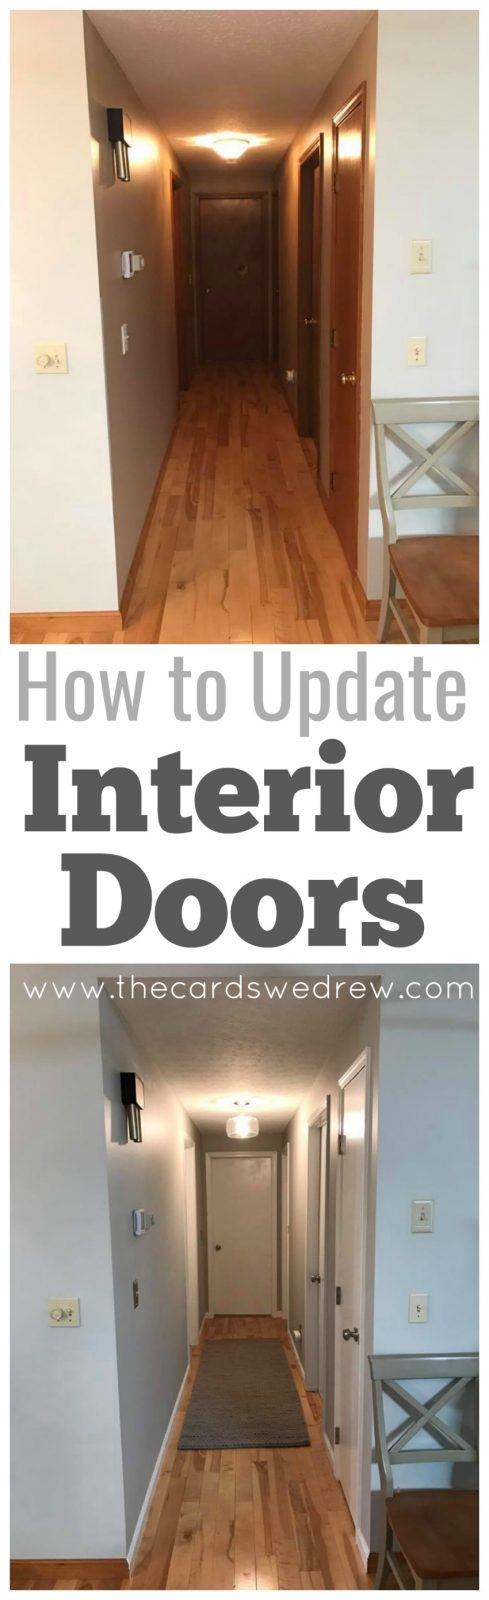 Pin it for later\u2026 & How to Update Interior Doors - The Cards We Drew